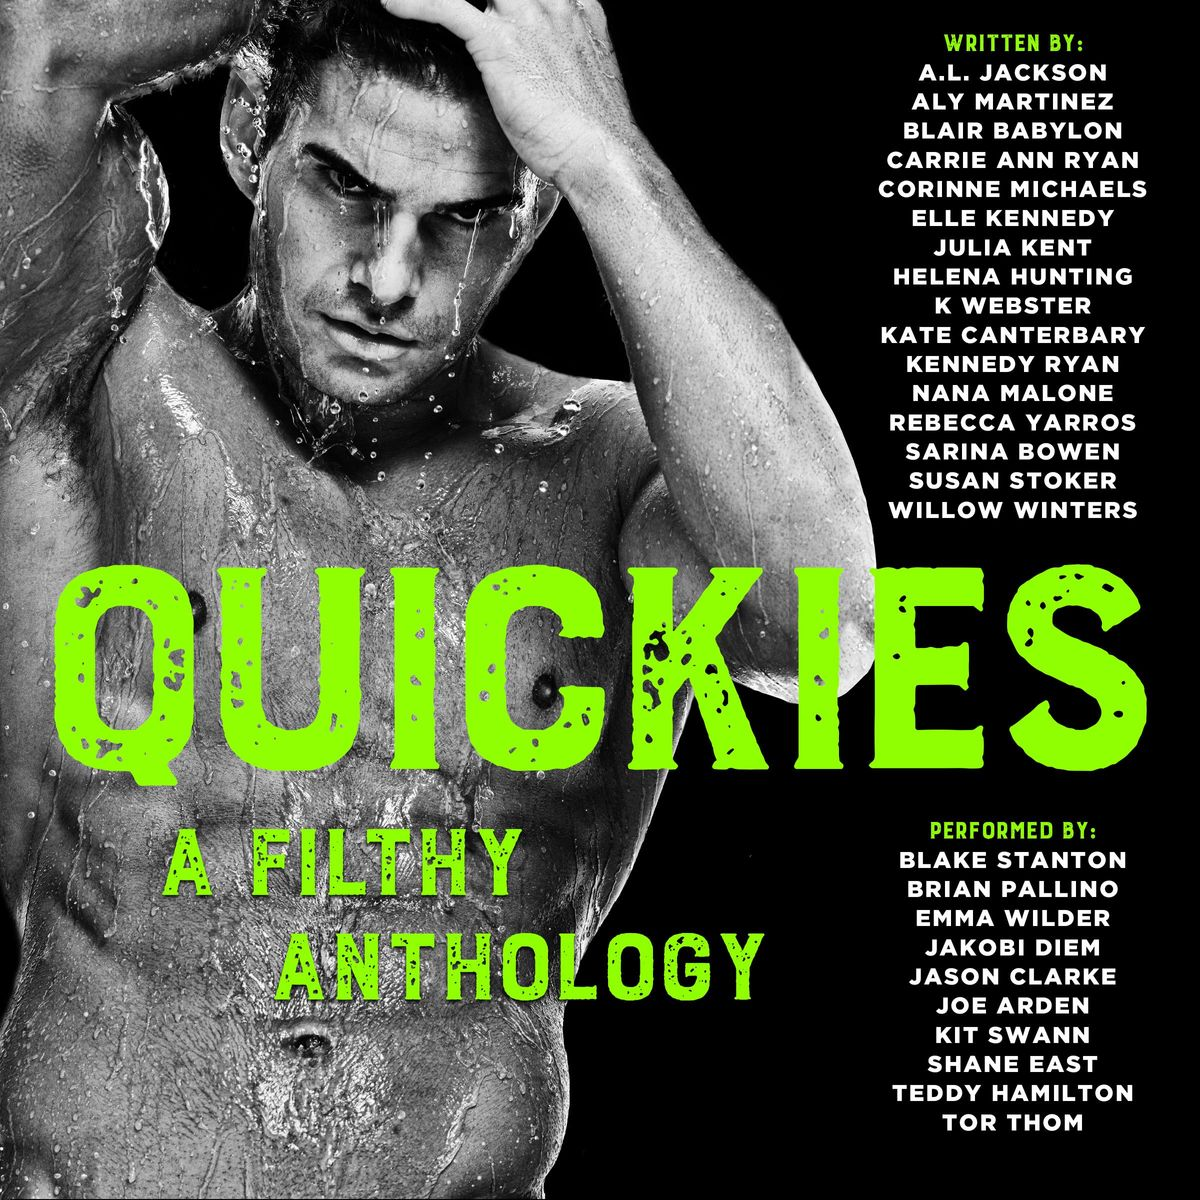 Quickies: A Filthy Anthology by Aly Martinez, Blair Babylon, Kate Canterbary, Corinne Michaels, Nana Malone, A.L. Jackson, Julia Kent, Susan Stoker, Willow Winters, Carrie Ann Ryan, Kennedy Ryan, K. Webster, Rebecca Yarros, Elle Kennedy, Sarina Bowen, Helena Hunting